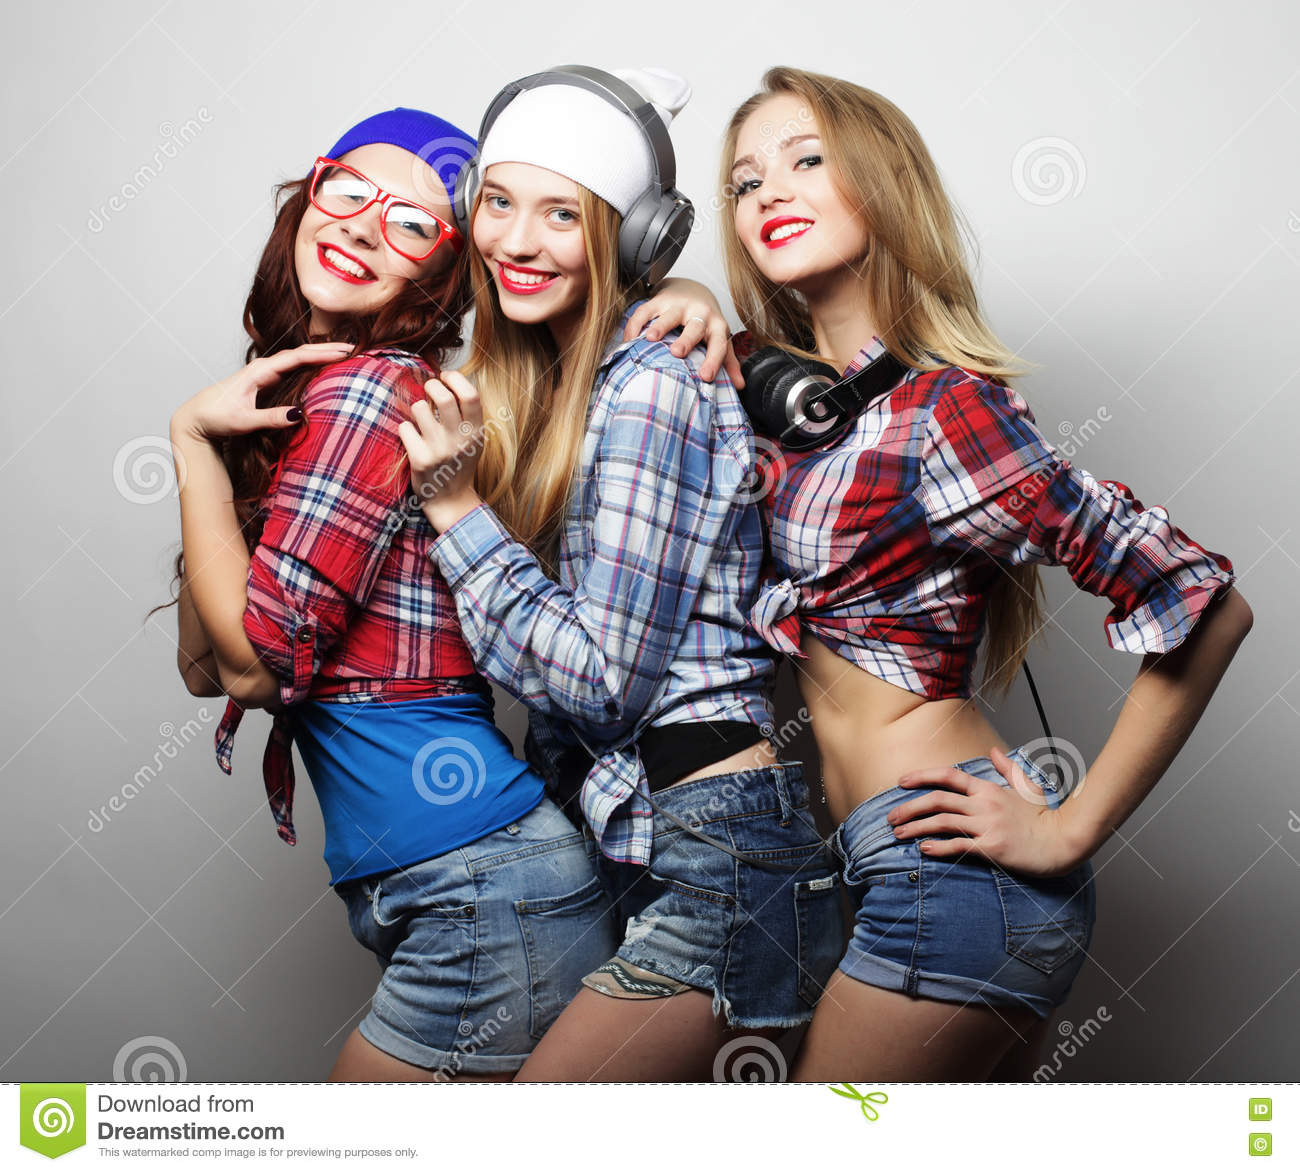 Hipster Fashion Photography: Fashion Portrait Of Three Stylish Hipster Girls Best